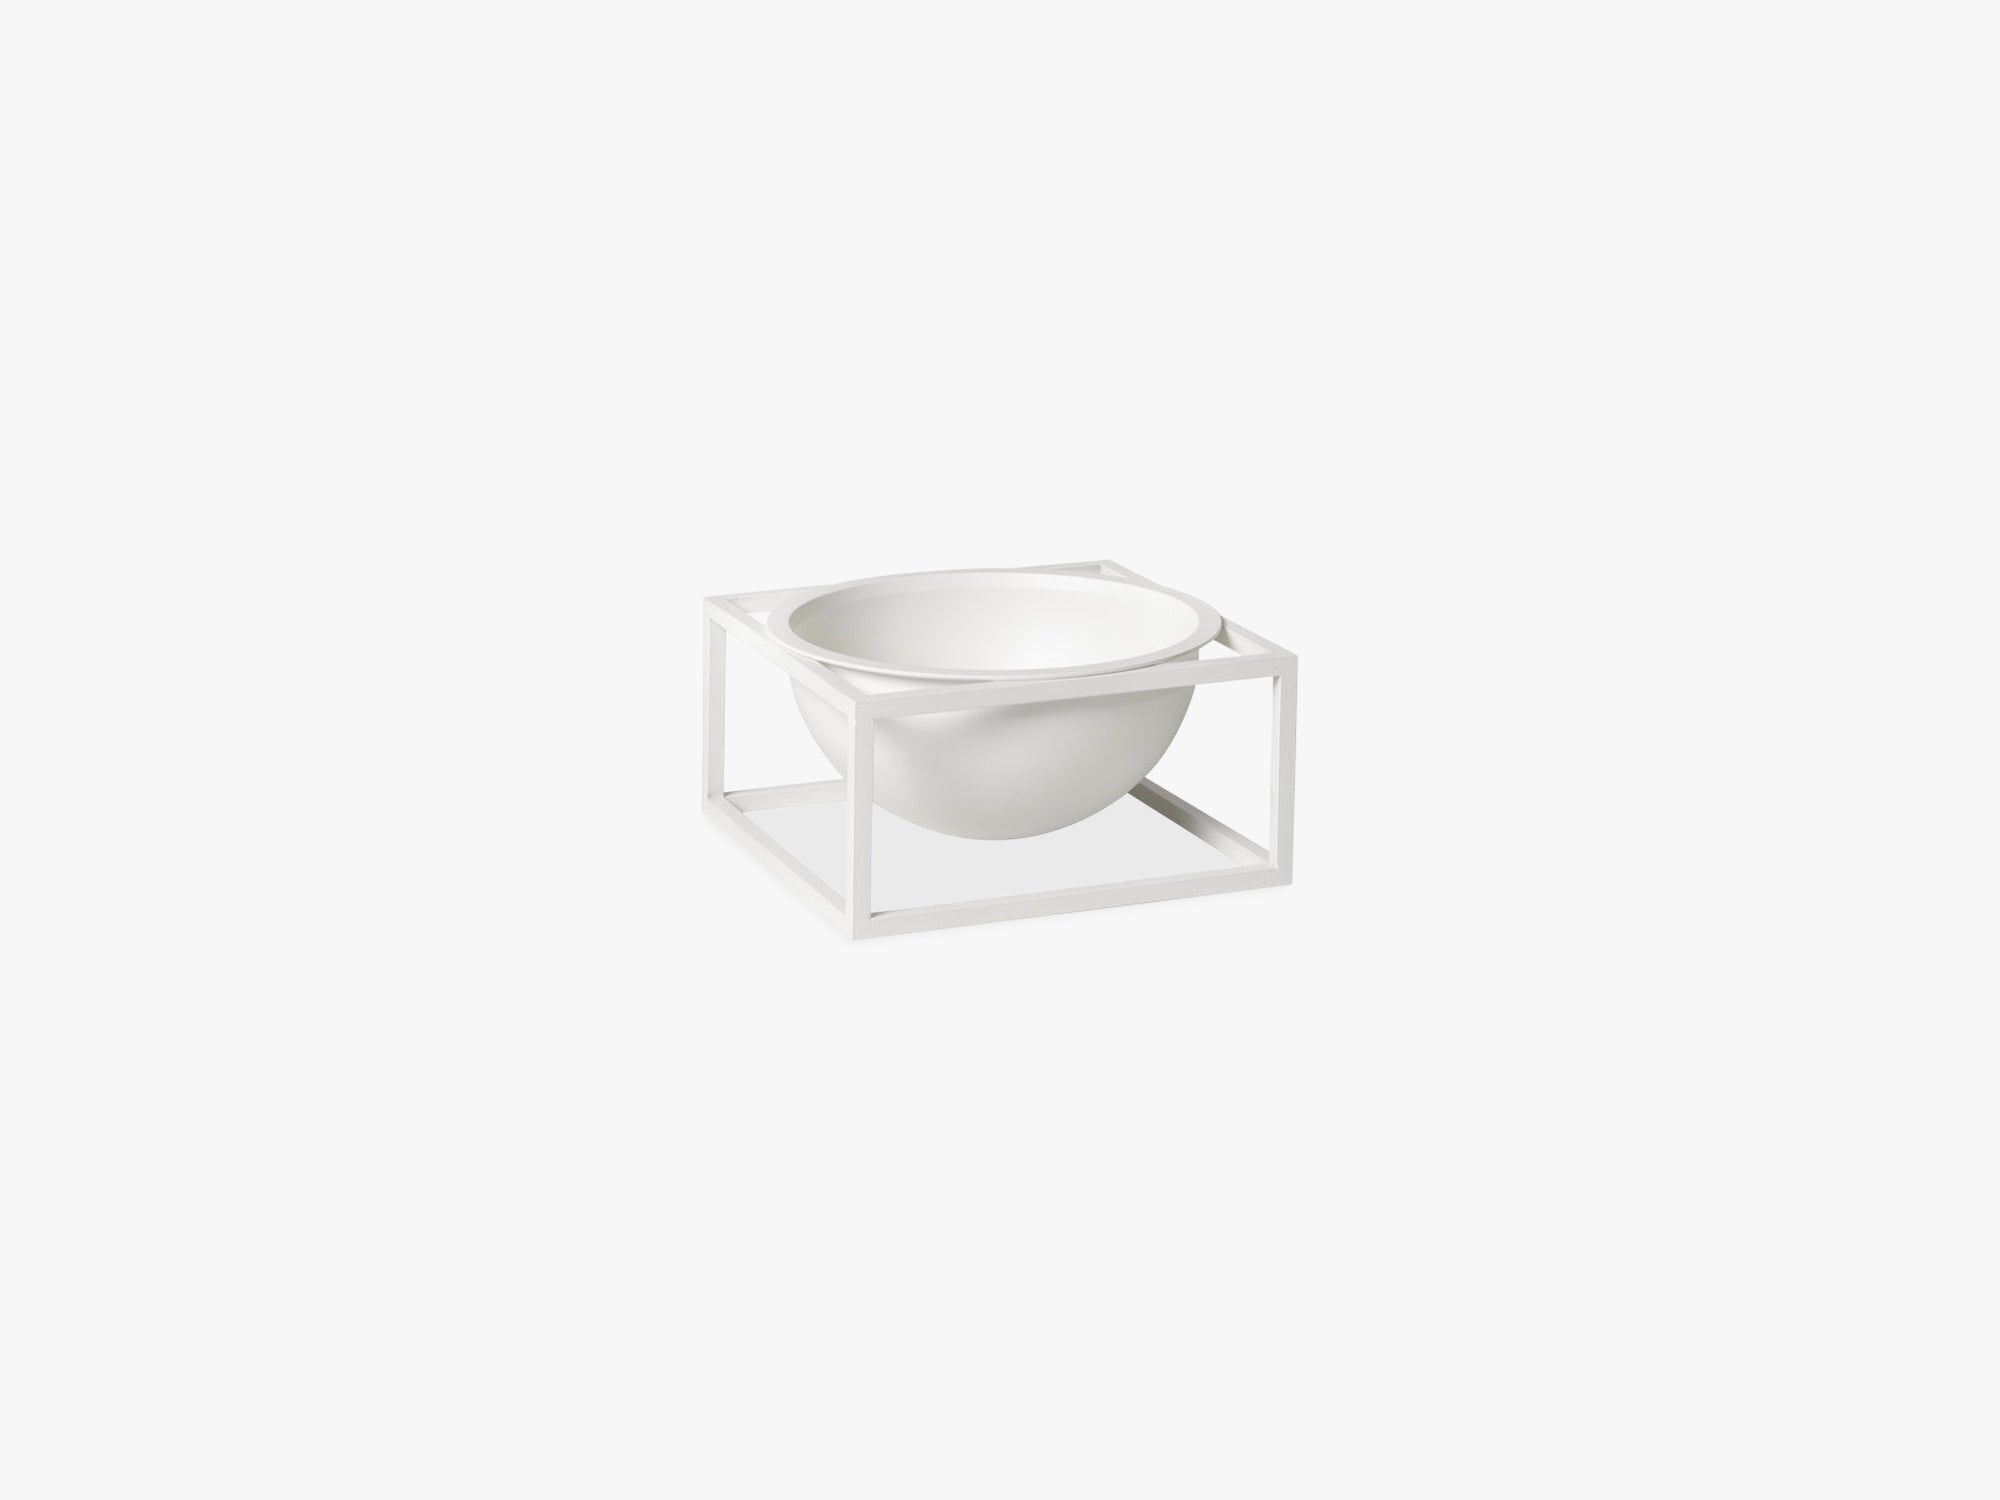 Kubus Bowl centerpiece small, white fra By Lassen